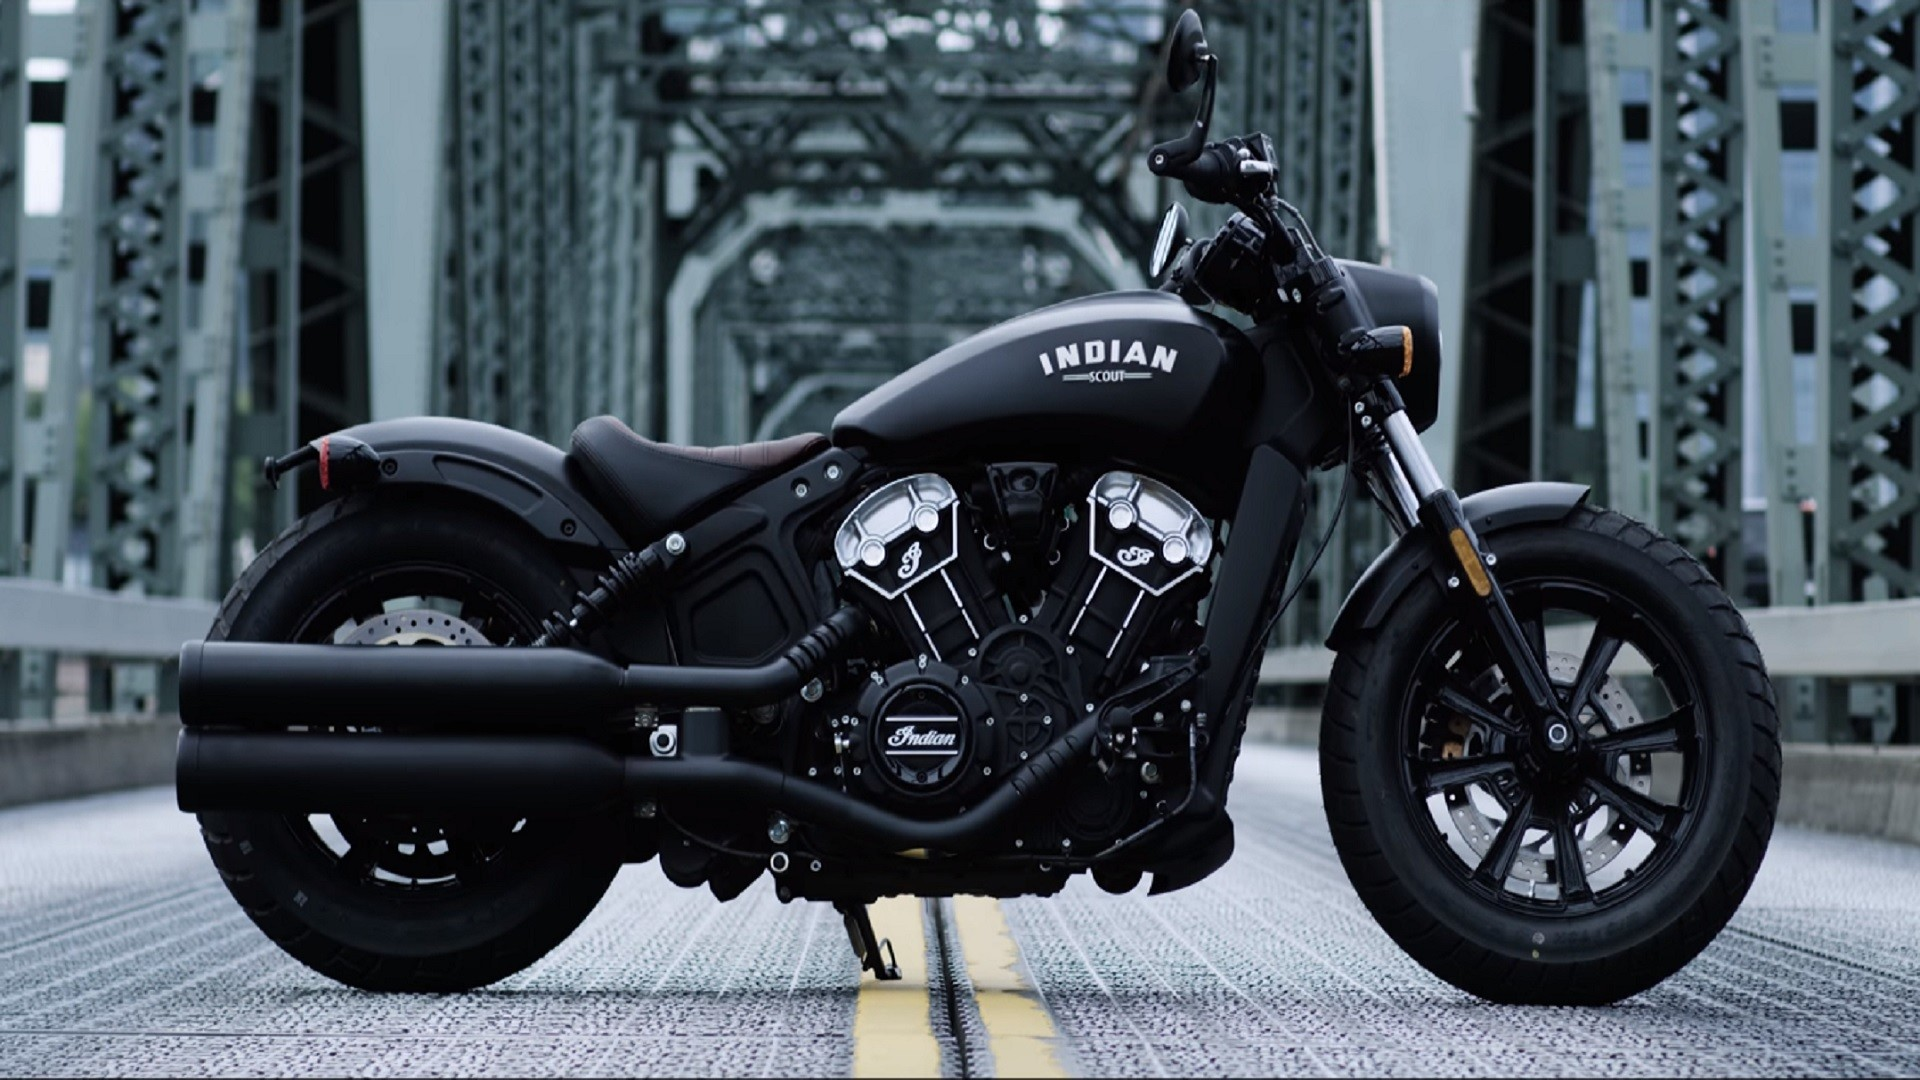 1920x1080 Indian Scout Bobber Motorcycle is Slammed Style in a Sleek Design -  SolidSmack -